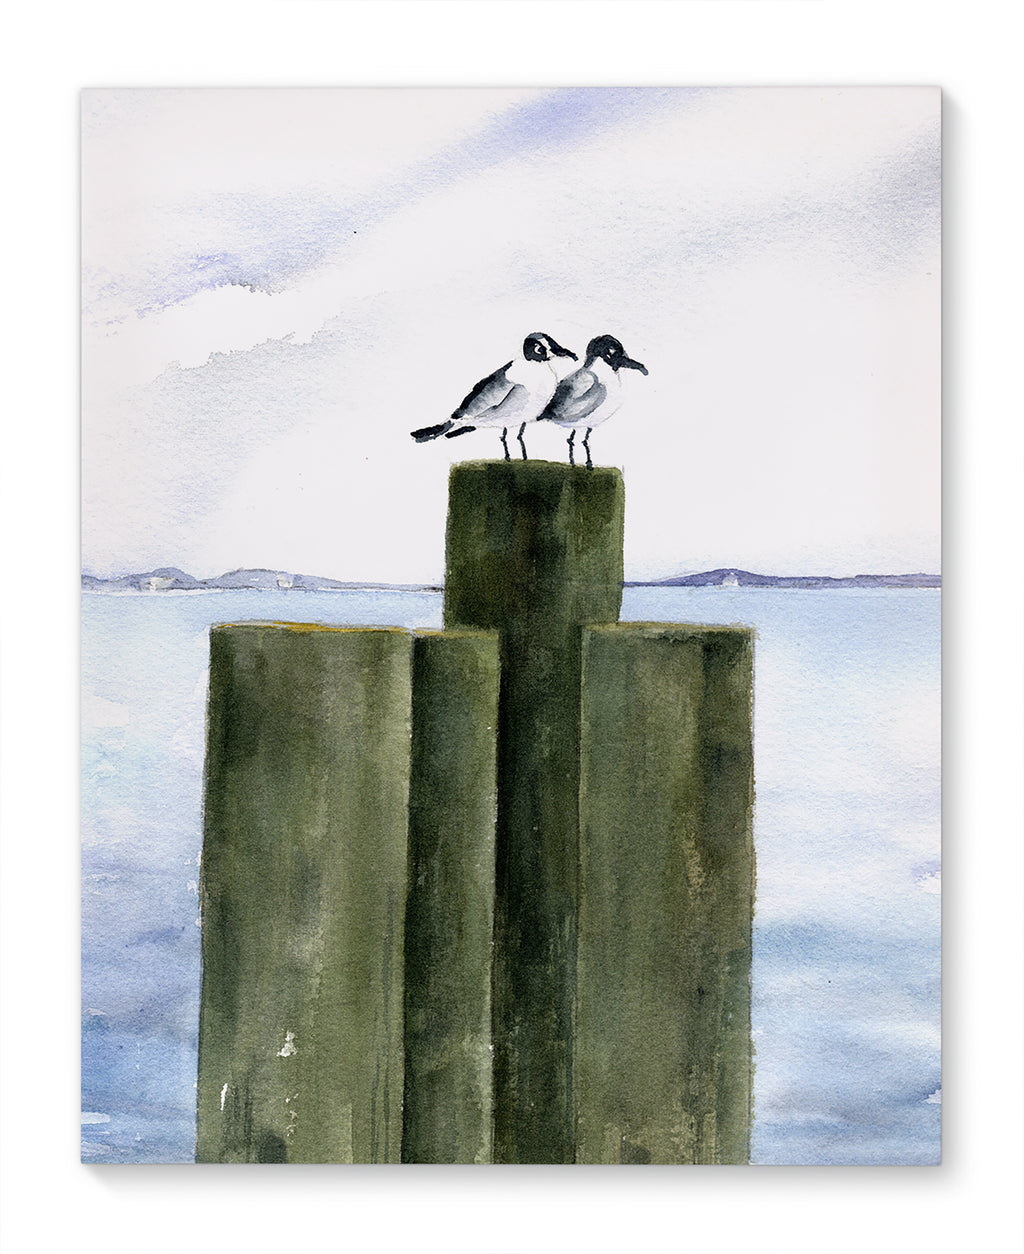 BIRDS ON PIERS Canvas Art By Jayne Conte